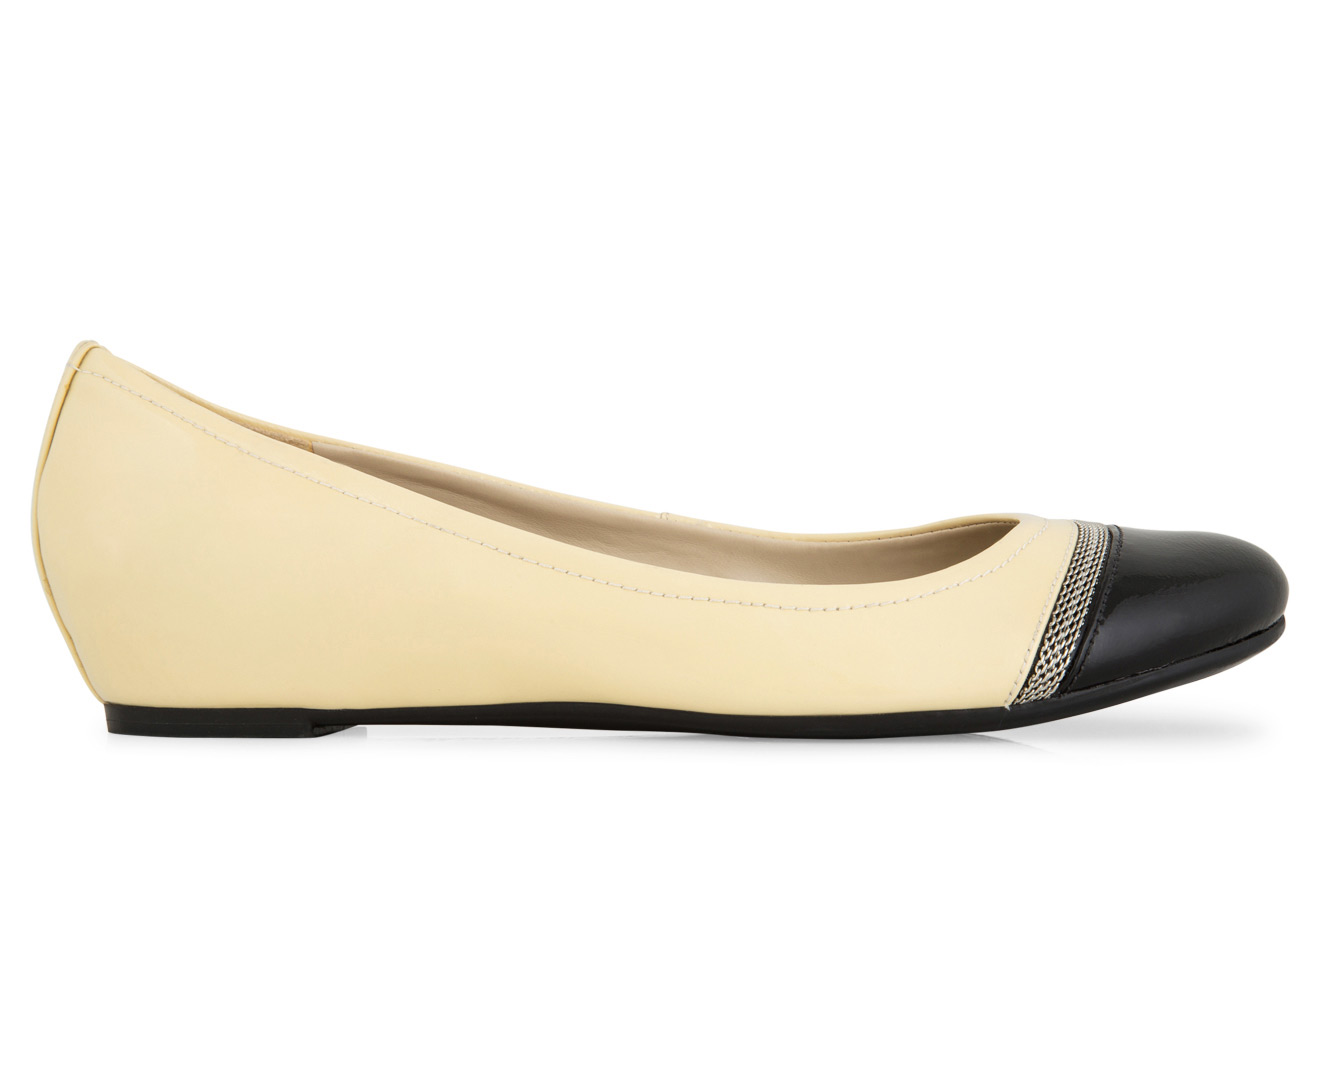 The Naturalizer Clearance Shoes Online Australia